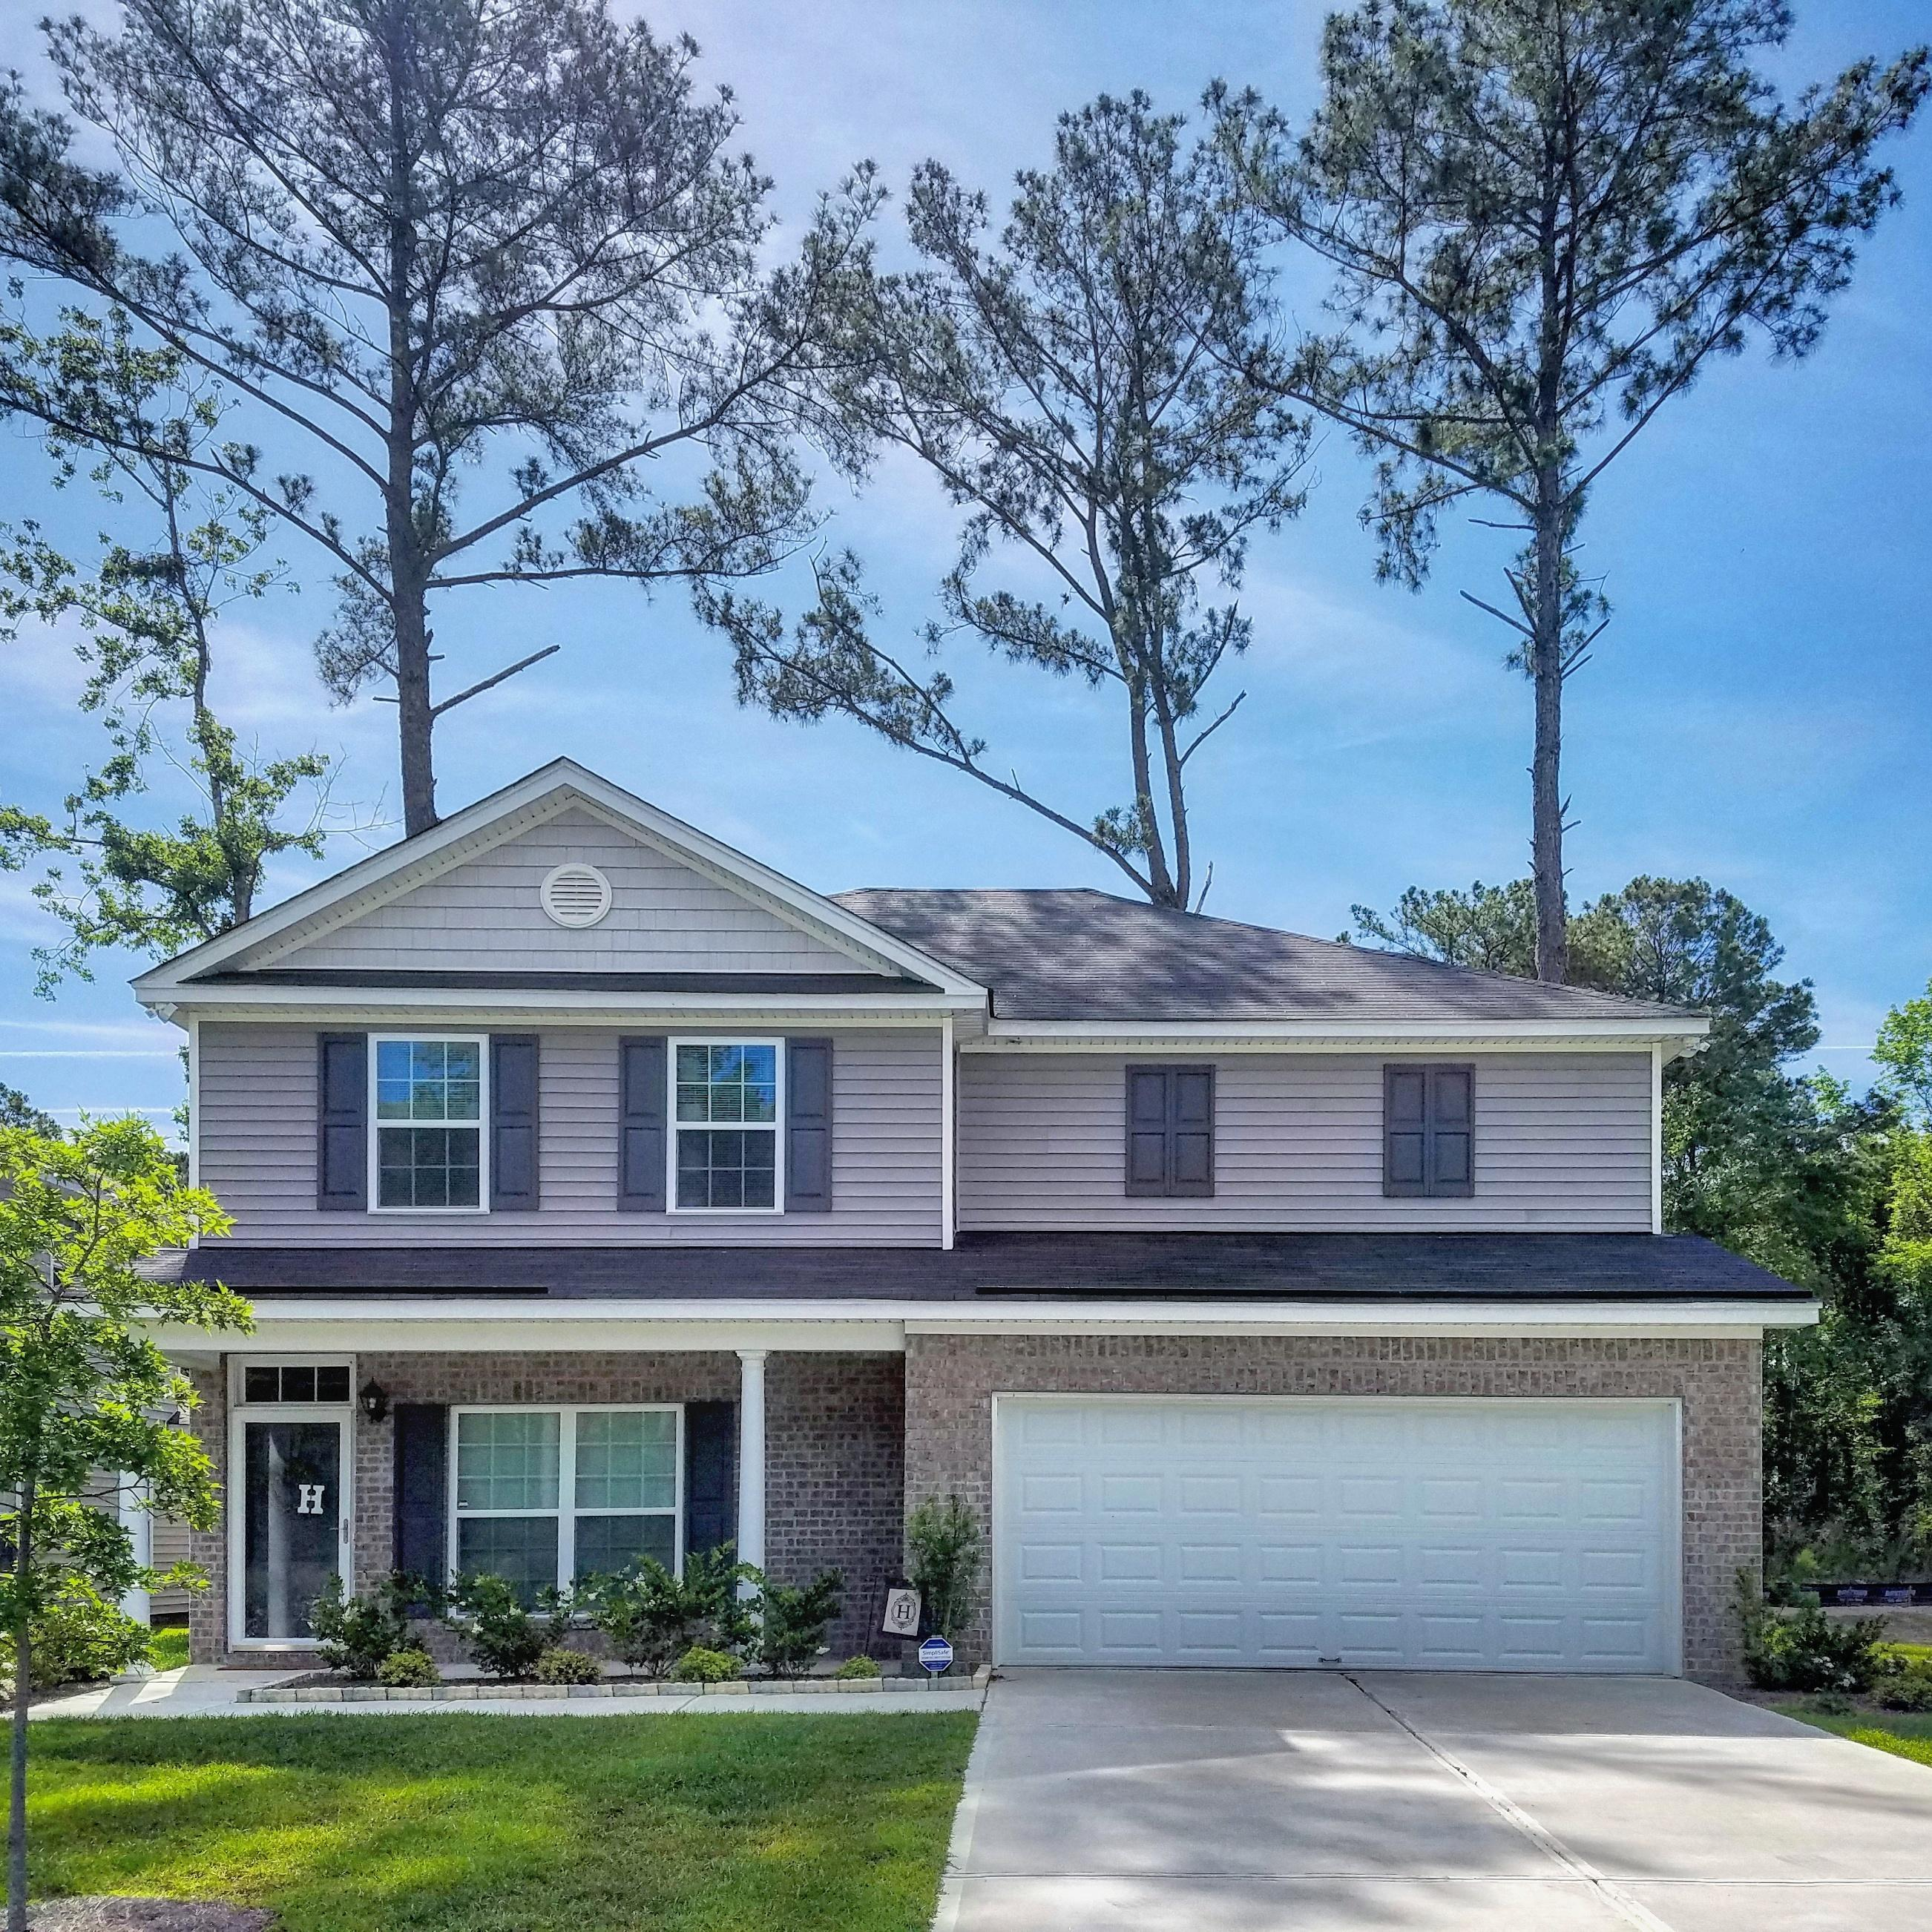 'Derrick Landing East' by Konter Quality Homes in Savannah